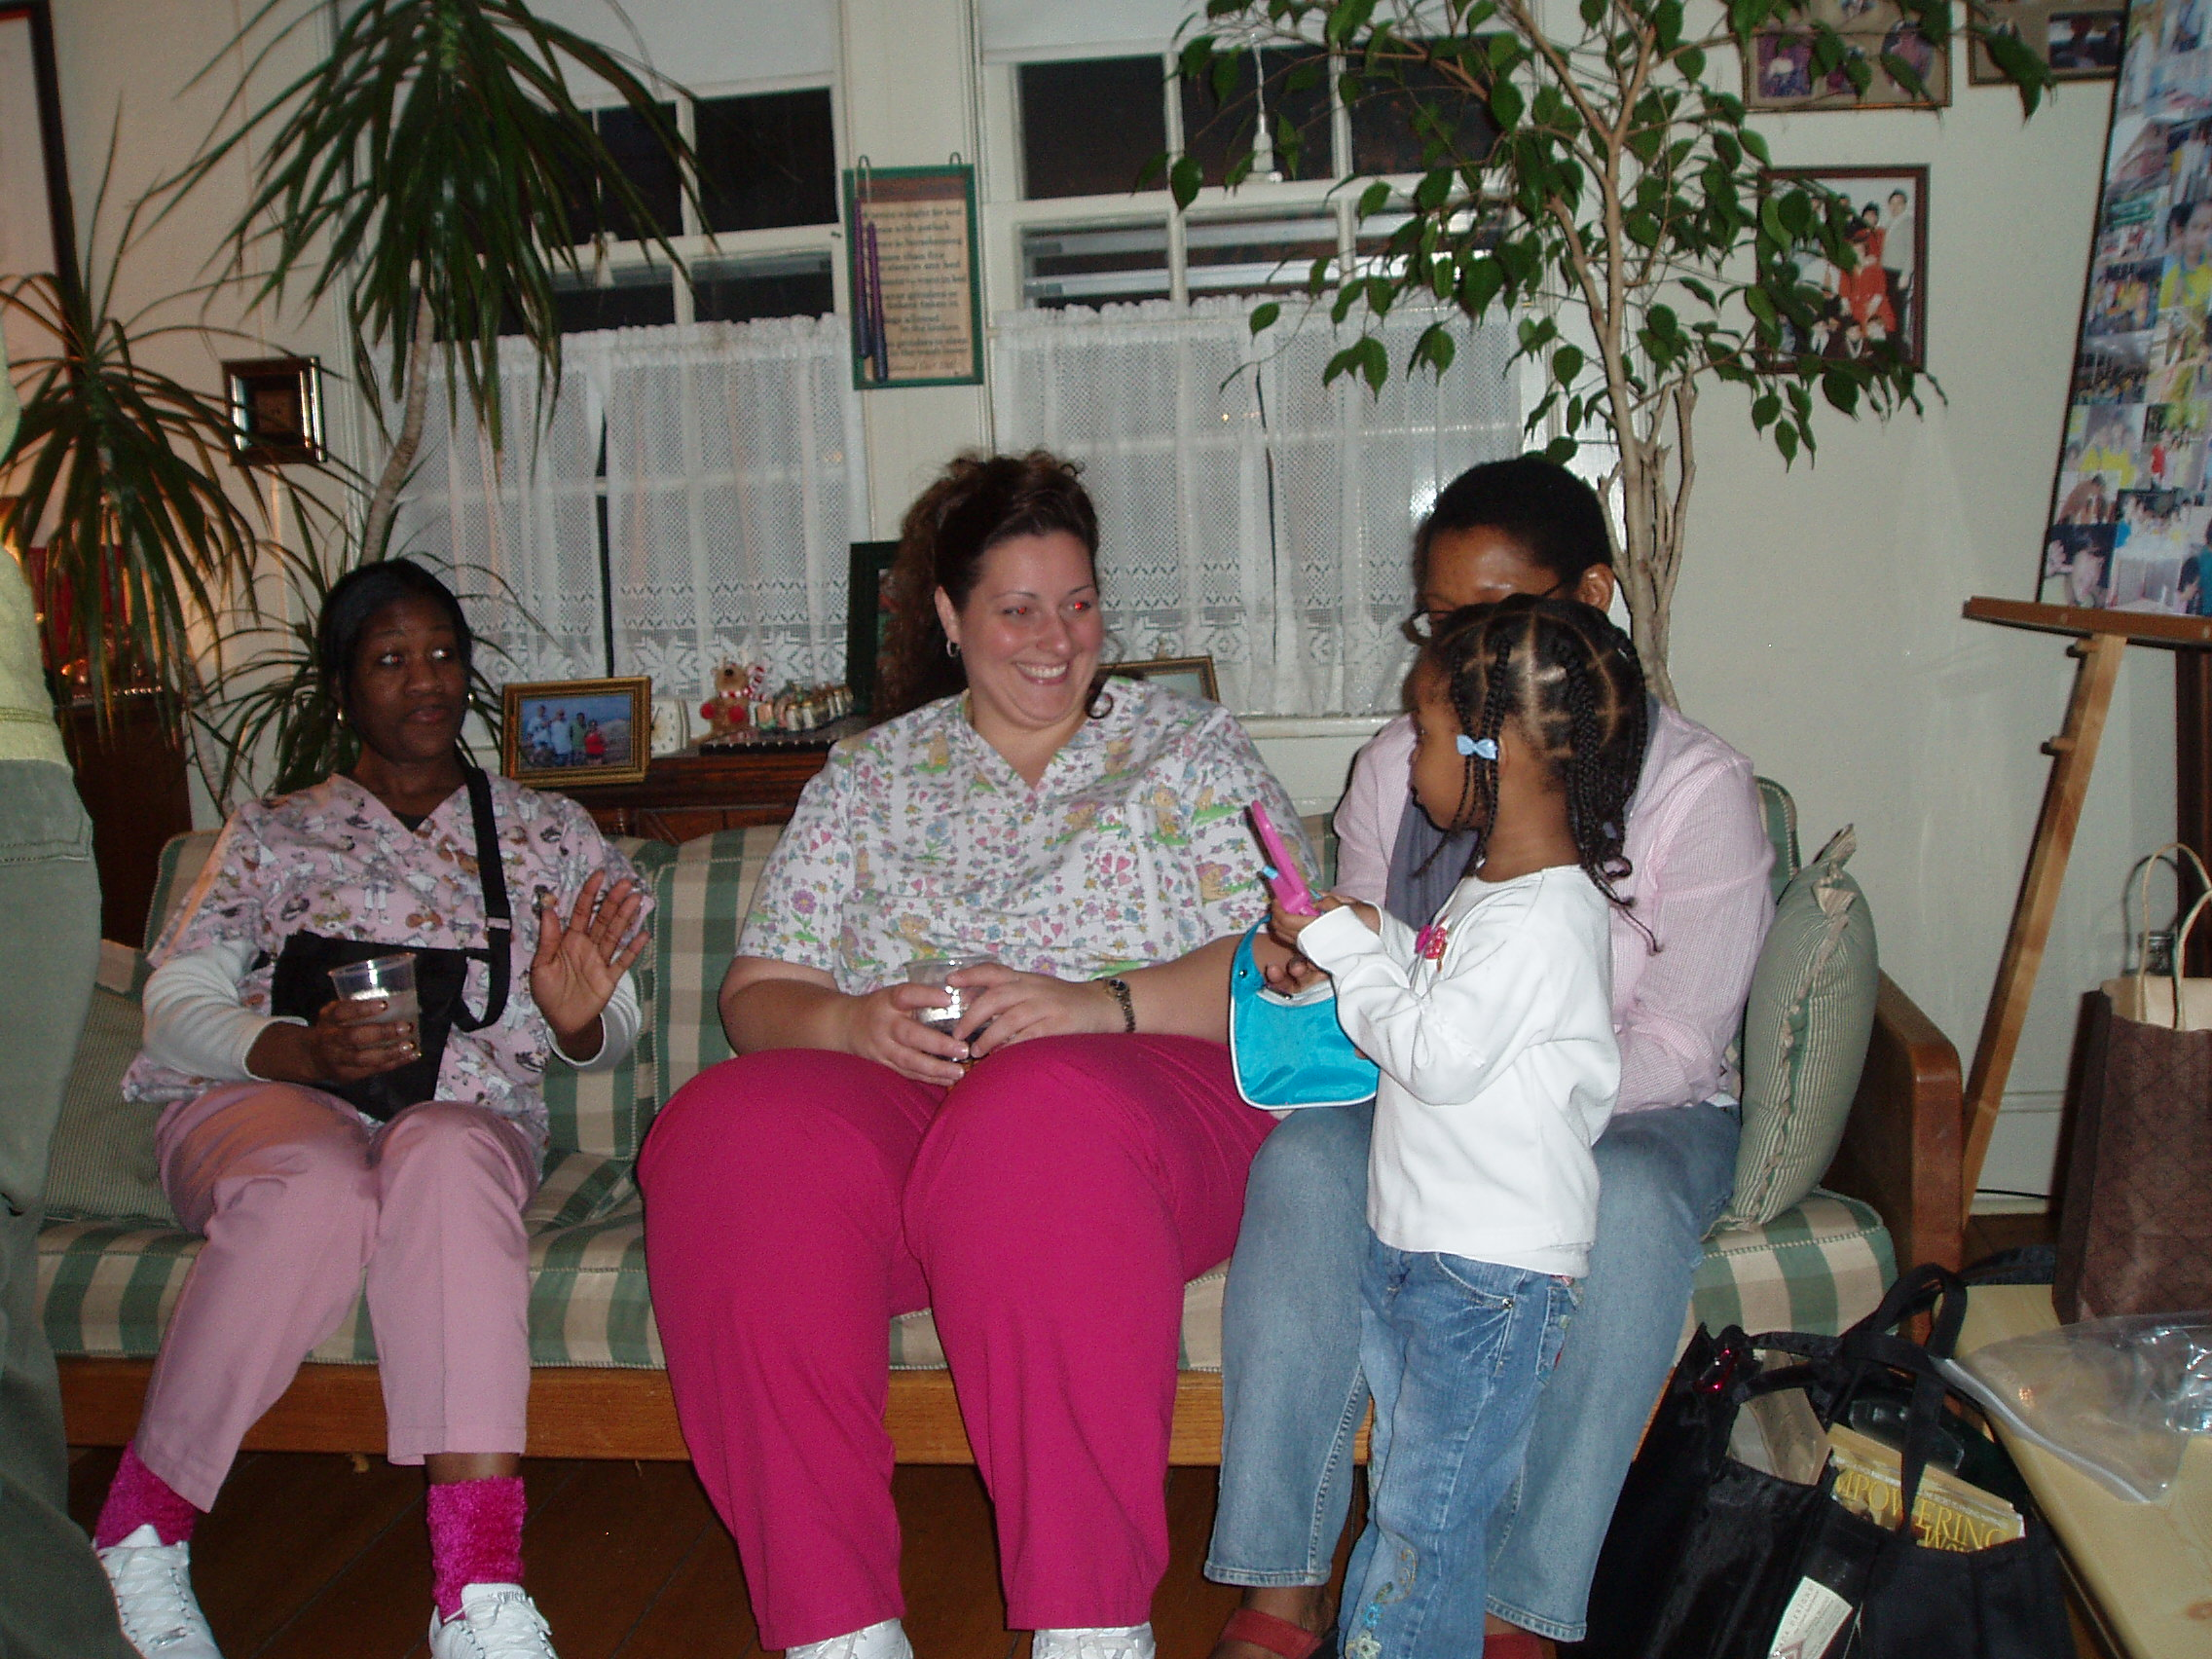 Leticia & Lucy house party 9:07.jpg